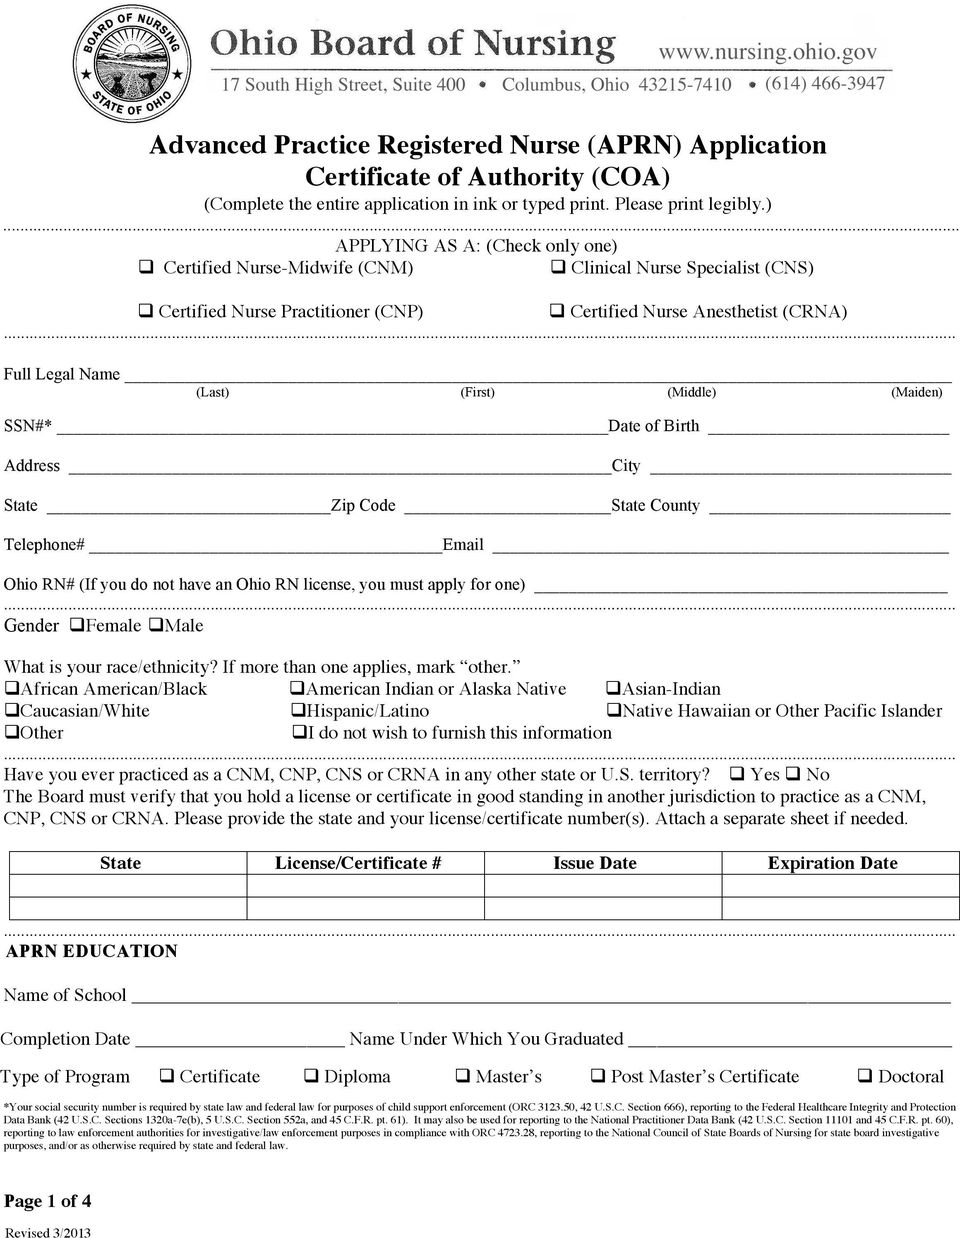 (Complete the entire application in ink or typed print. Please print legibly.).